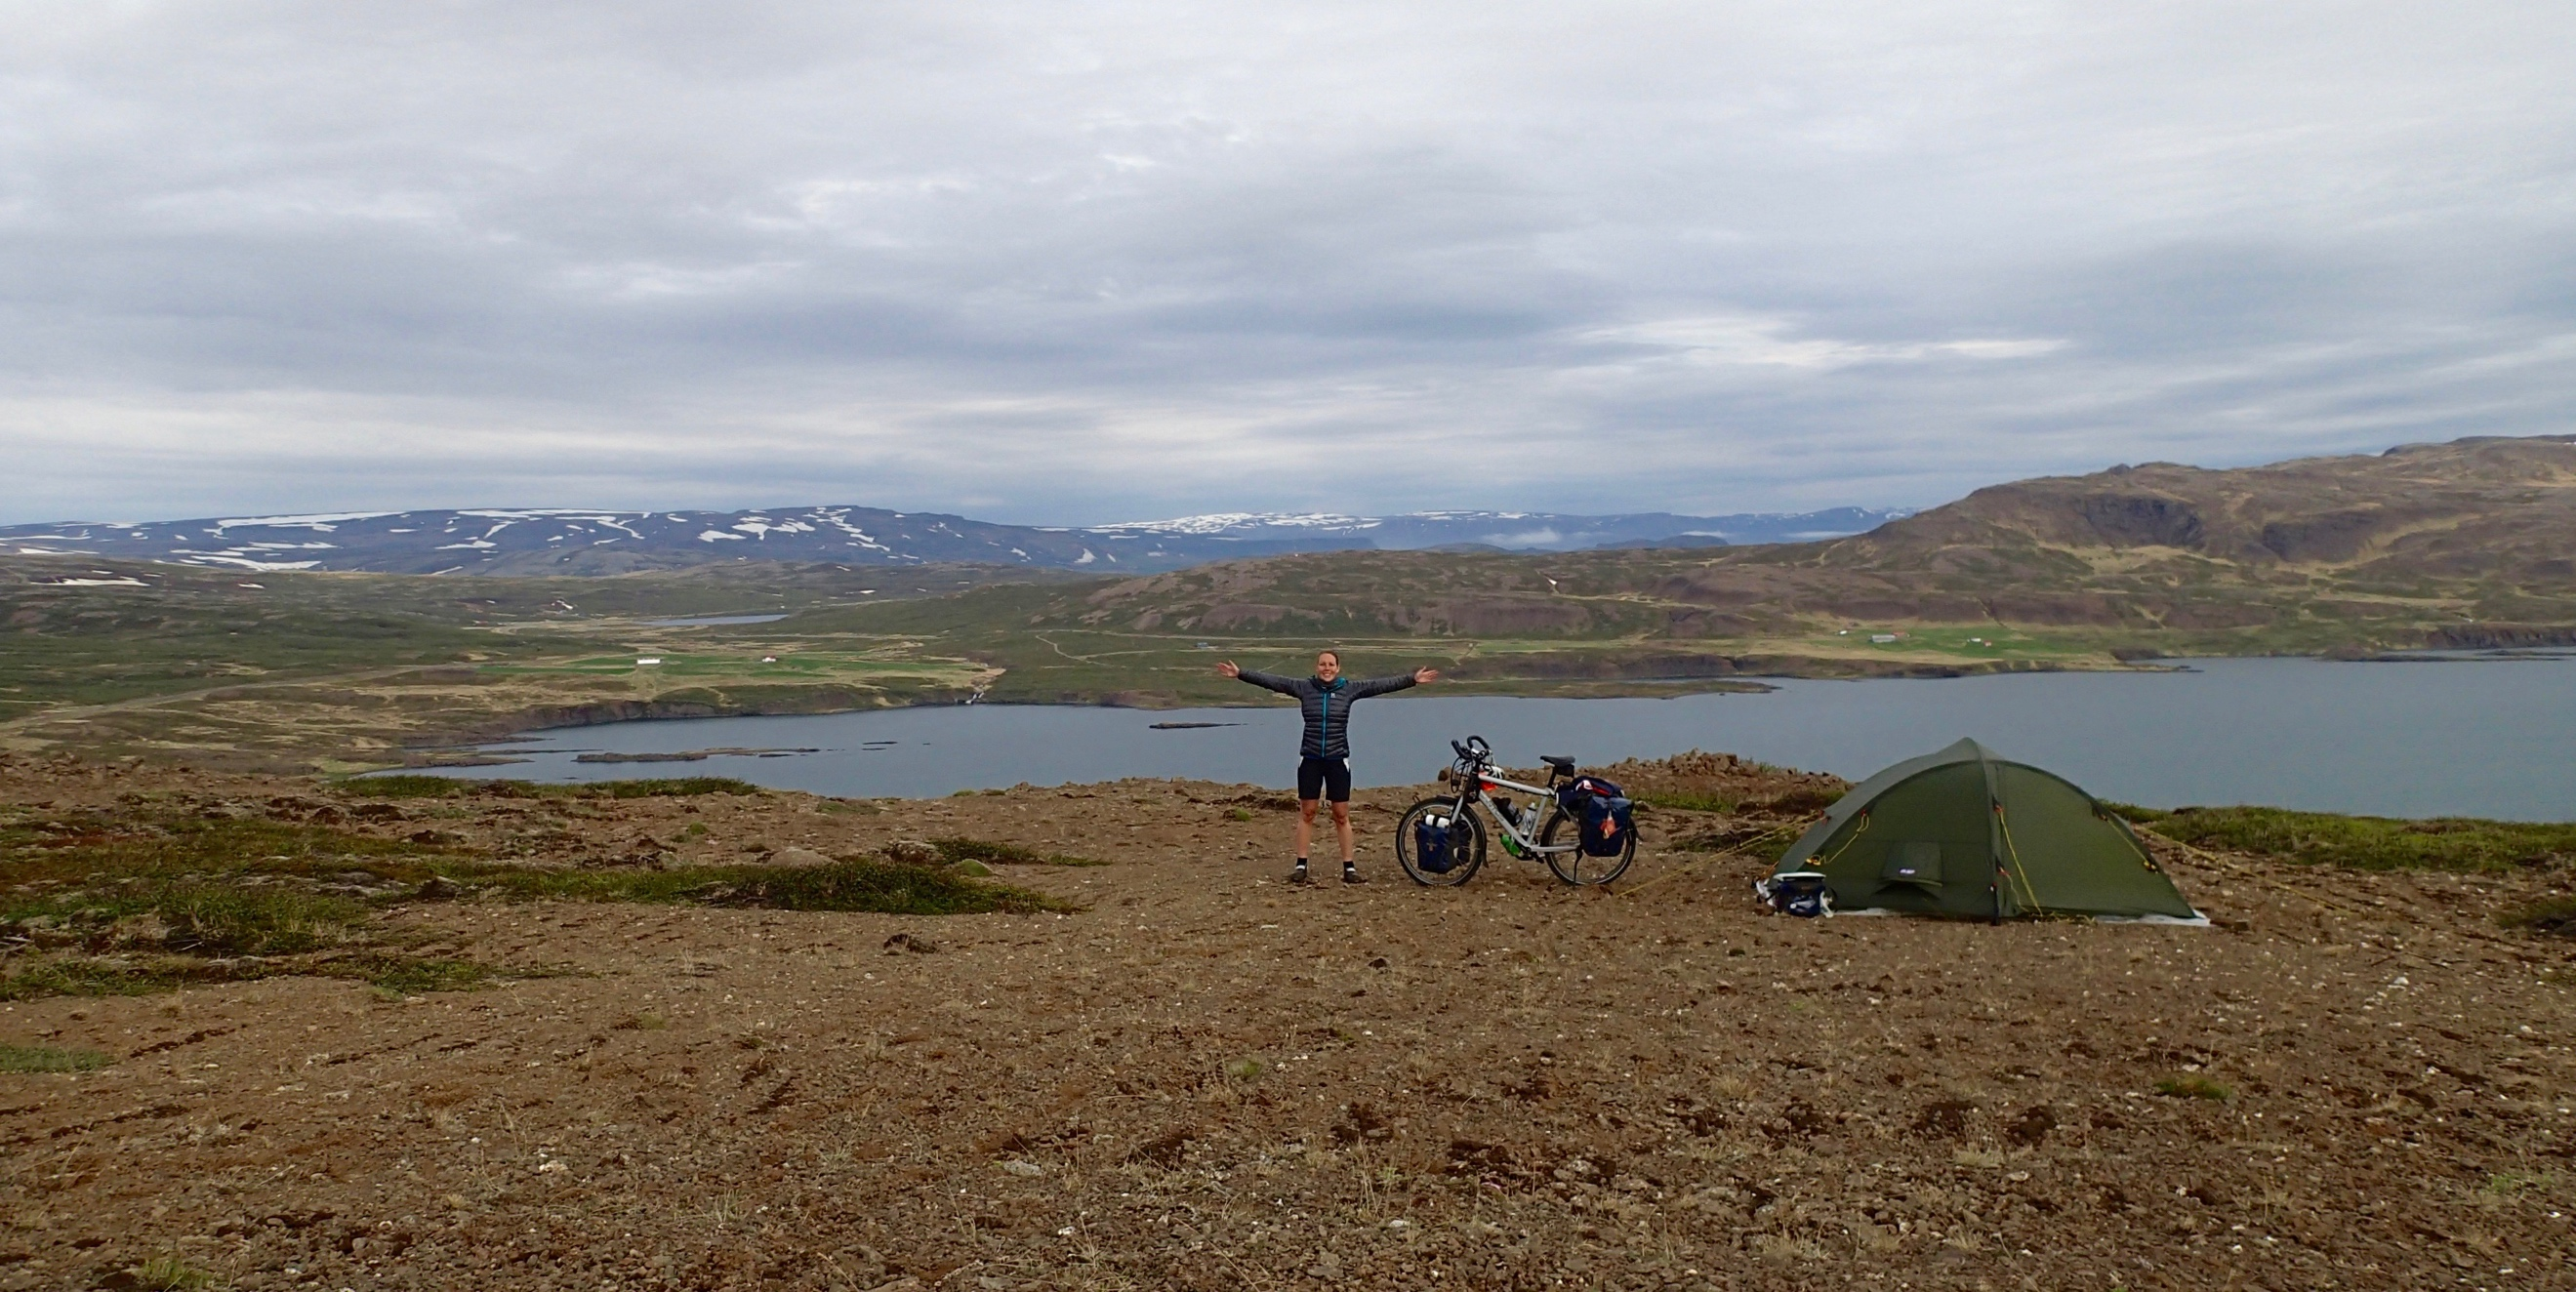 As for camping, Iceland is paradise! Everywhere you can pitch your tent and the drinking- and cooking water you can tap right from the many waterfalls and streams. Nobody would even think to interfere with your settlement.